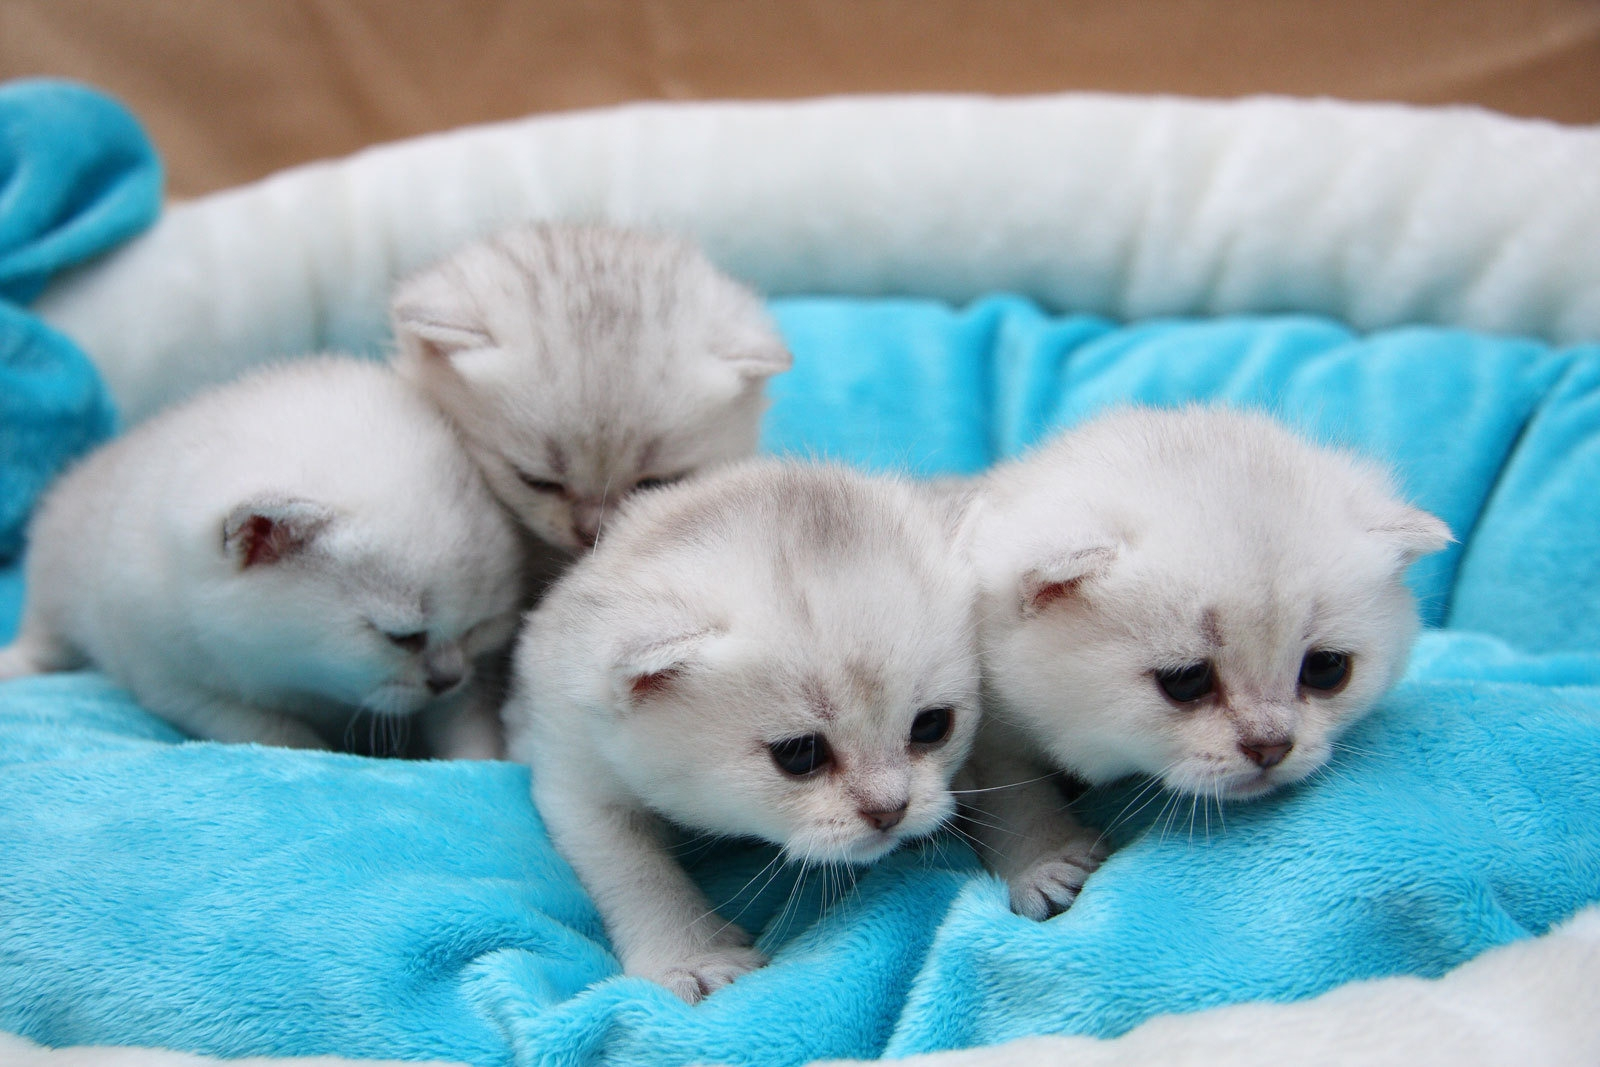 67792 Screensavers and Wallpapers Kittens for phone. Download Animals, To Lie Down, Lie, Toddlers, Kids, Small, Kittens pictures for free